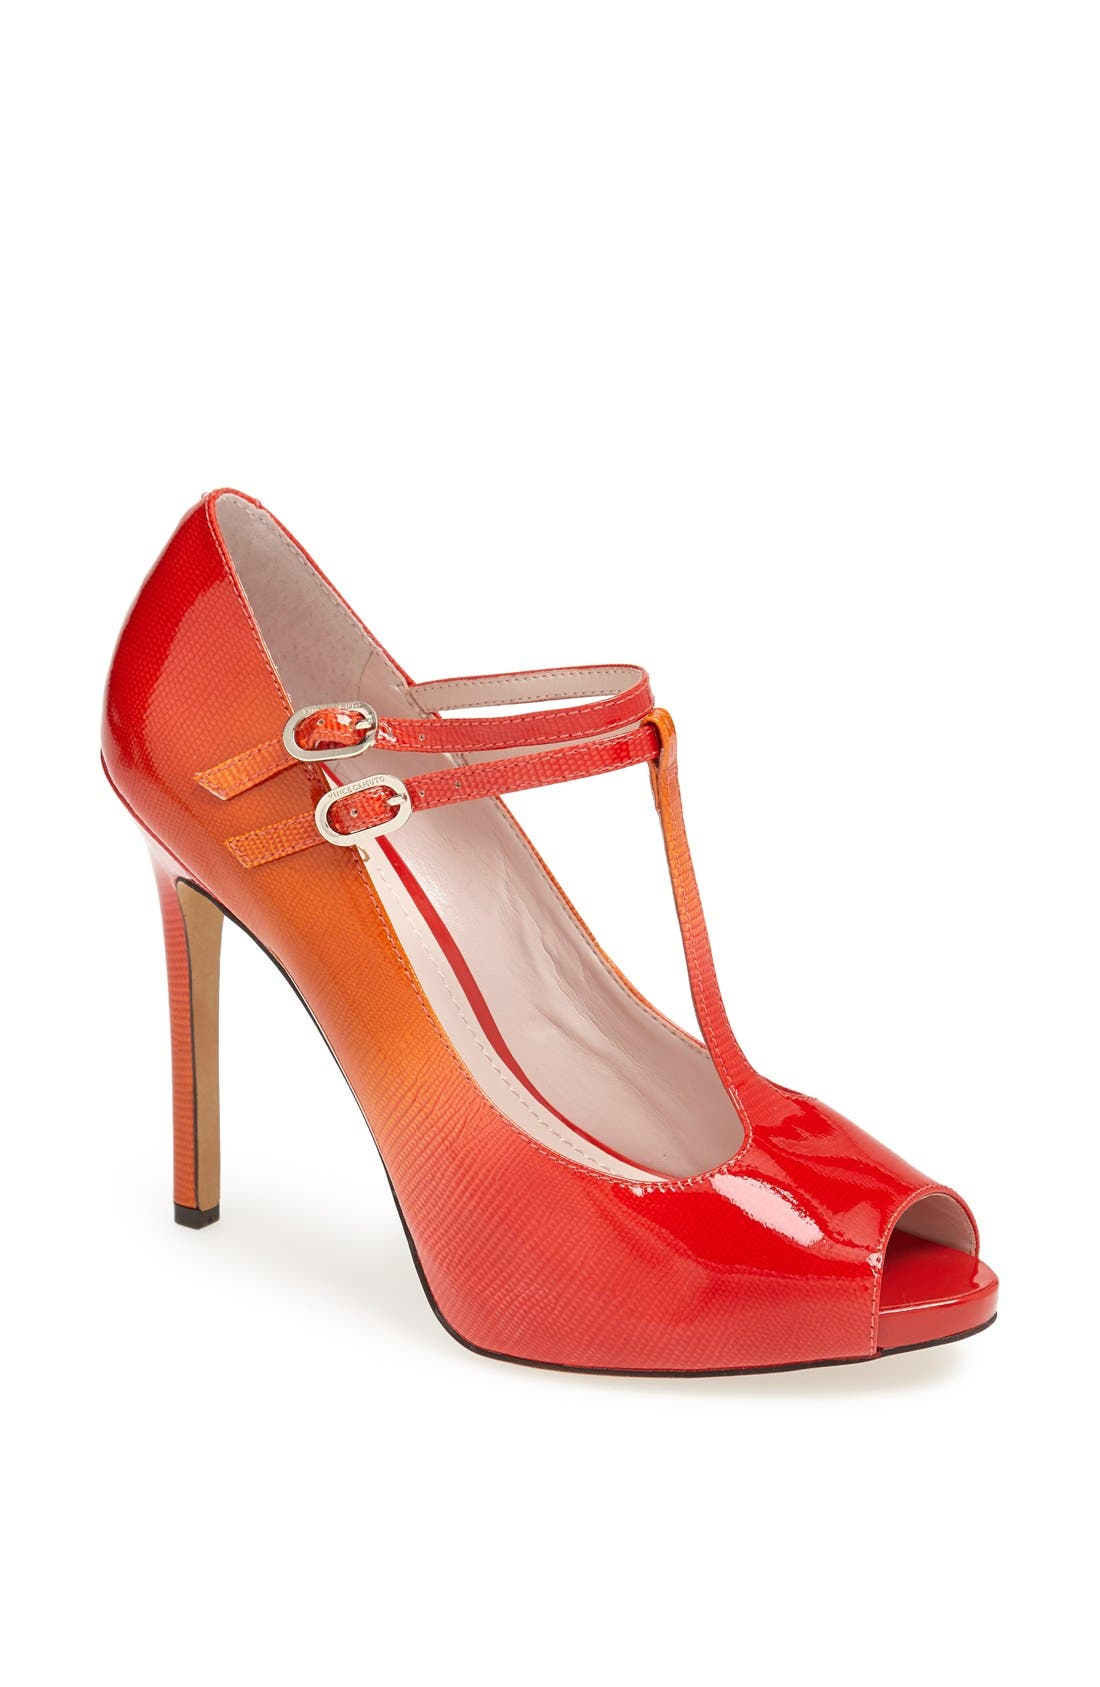 Main Image - Vince Camuto 'Carlii' Patent Leather Peep Toe Pump